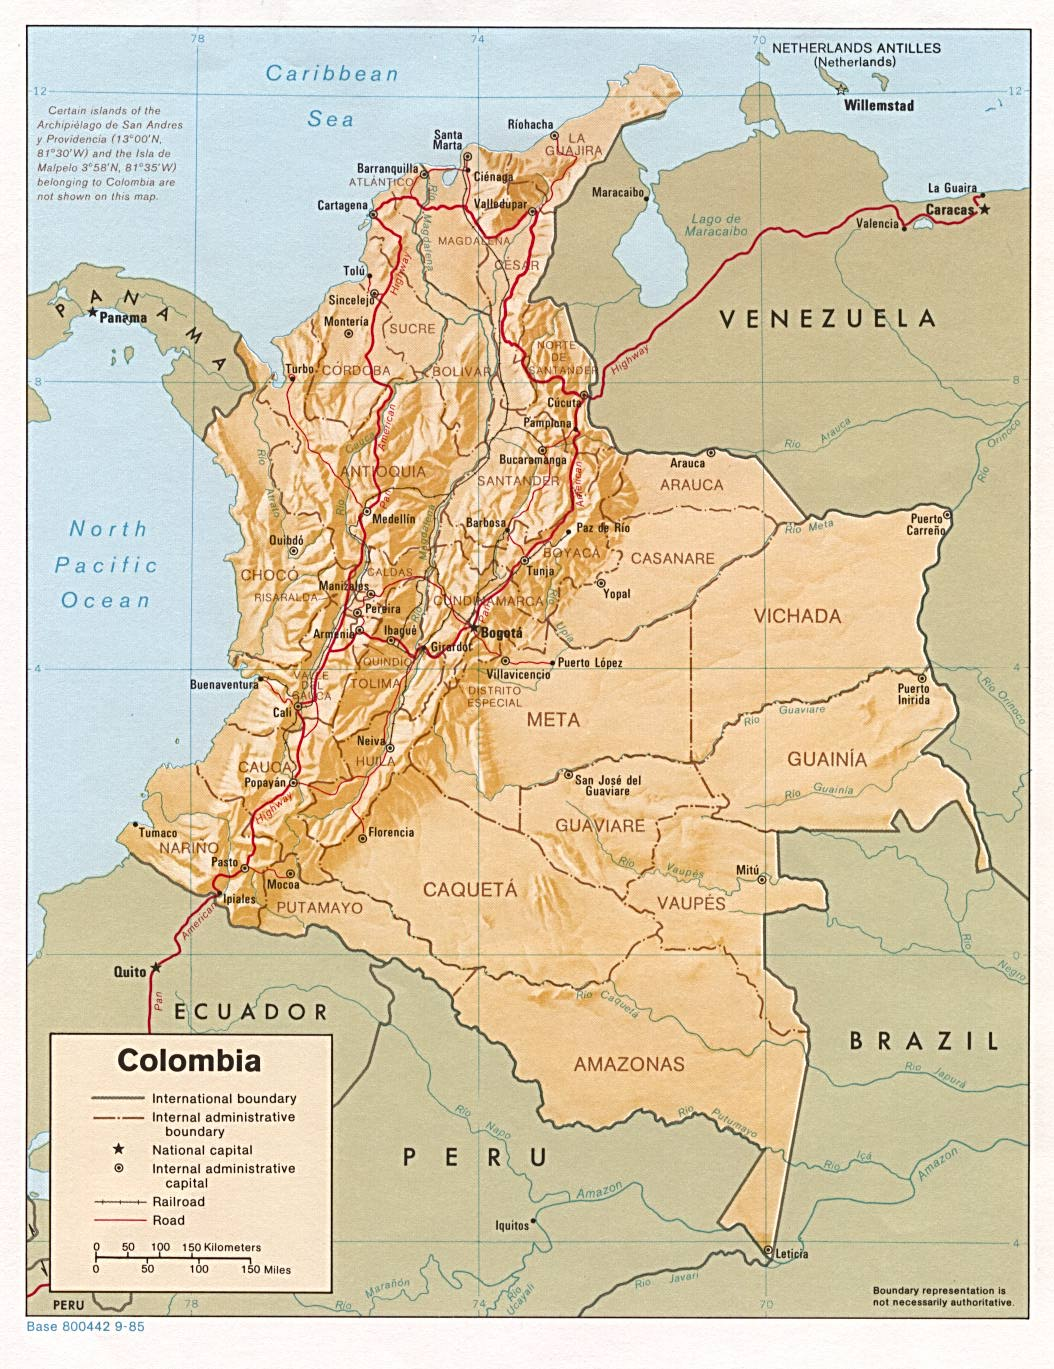 Colombia Shading Relief Map 1985 large map